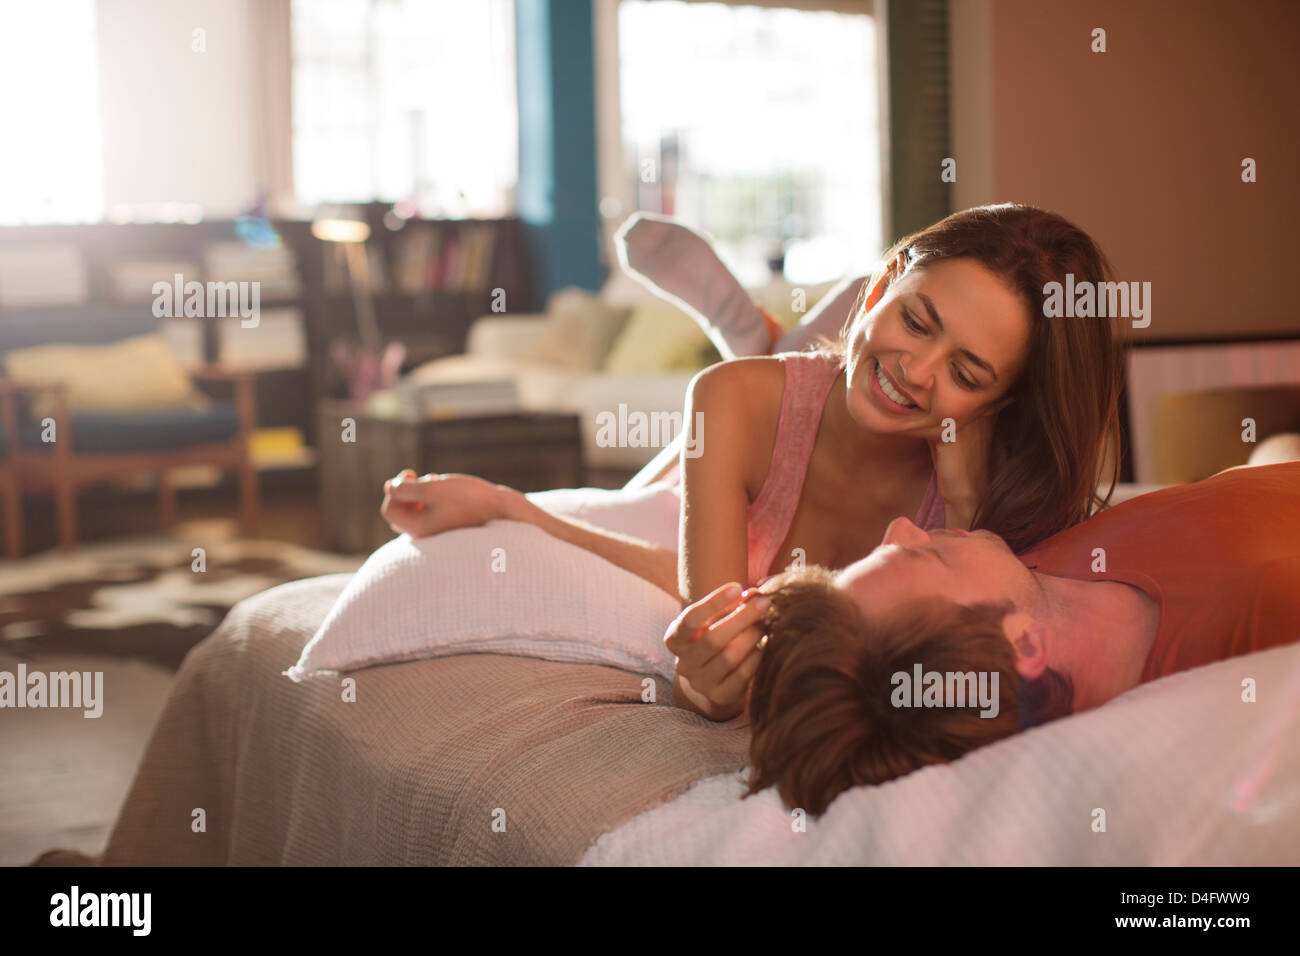 Couple relaxing on bed together - Stock Image